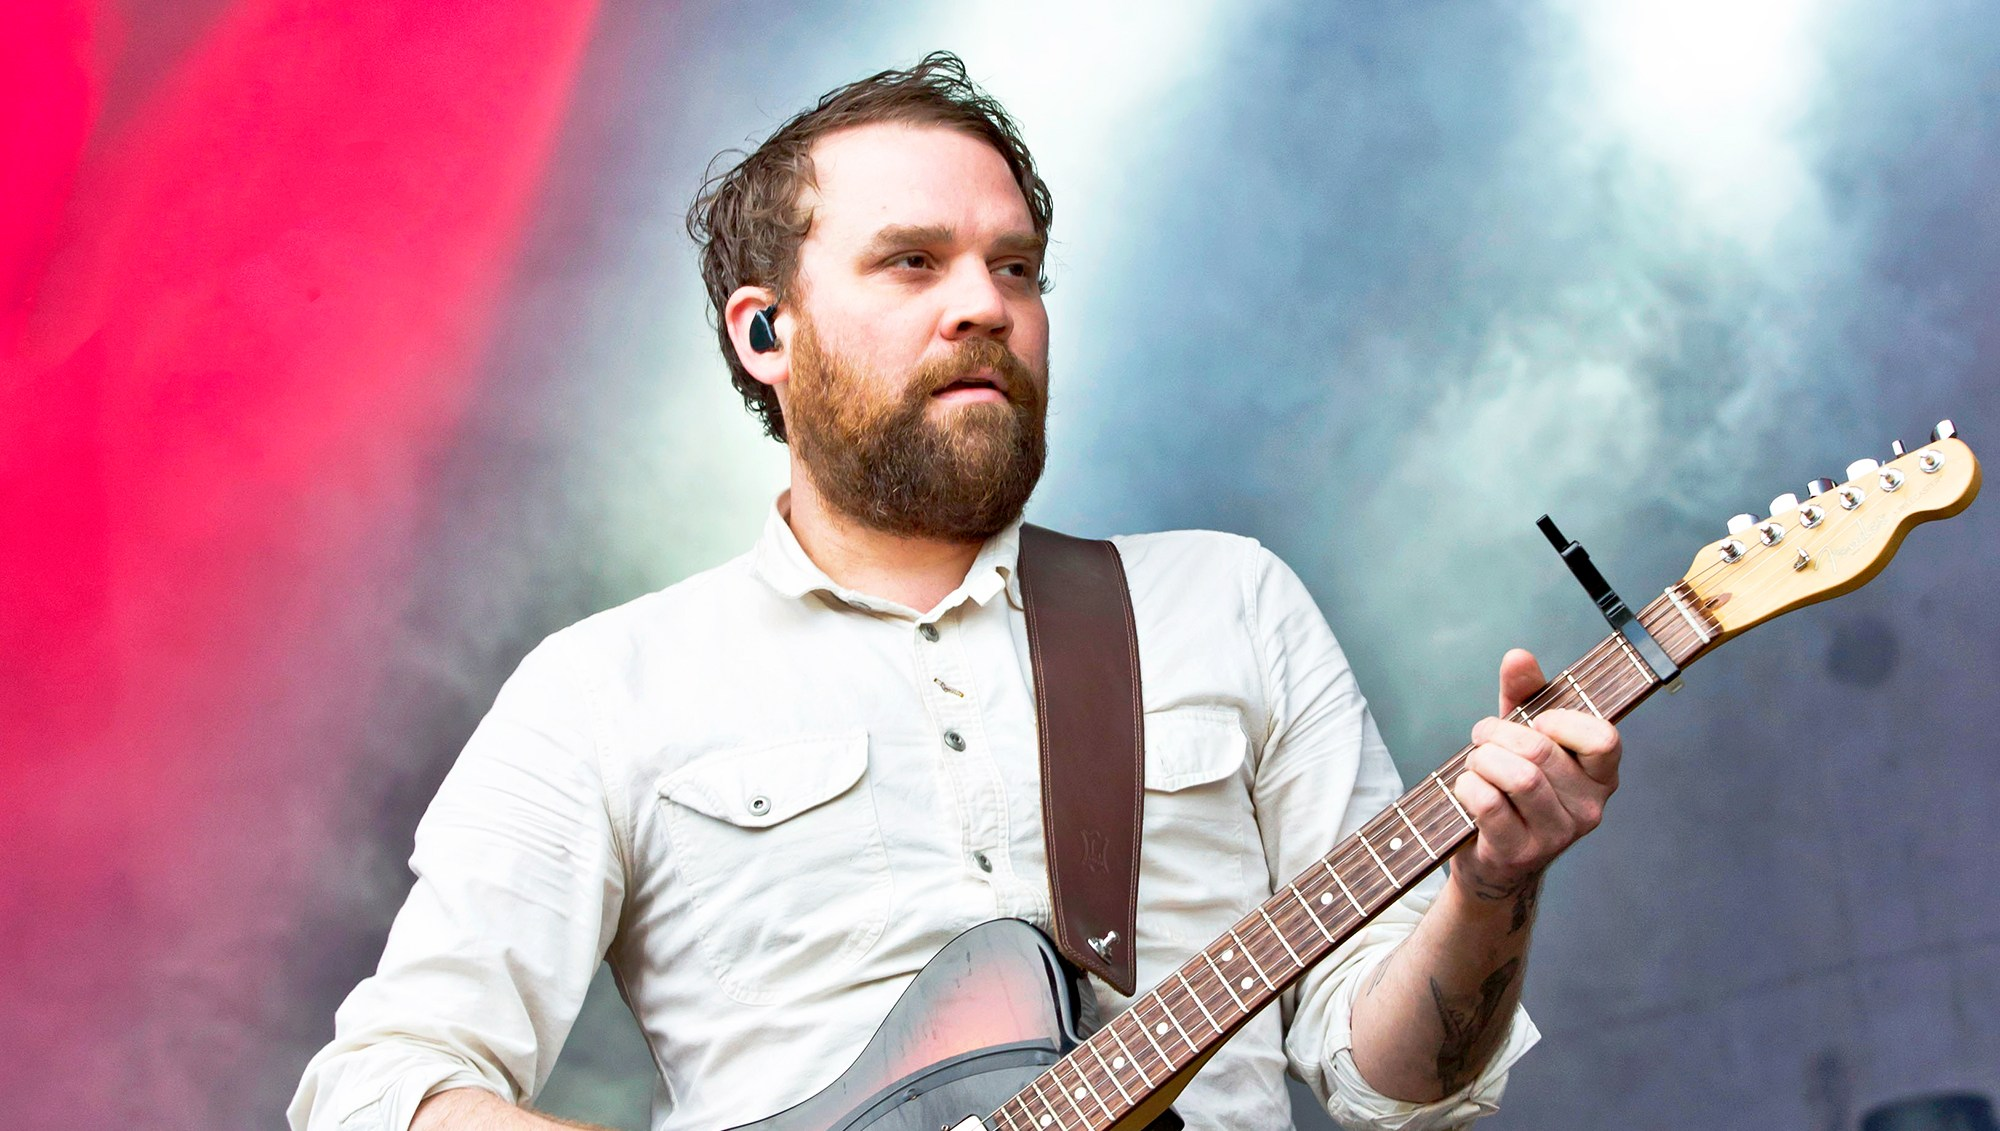 Scott Hutchison of Frightened Rabbit performs live during a concert at the Zitadelle Spandau in Berlin, Germany.